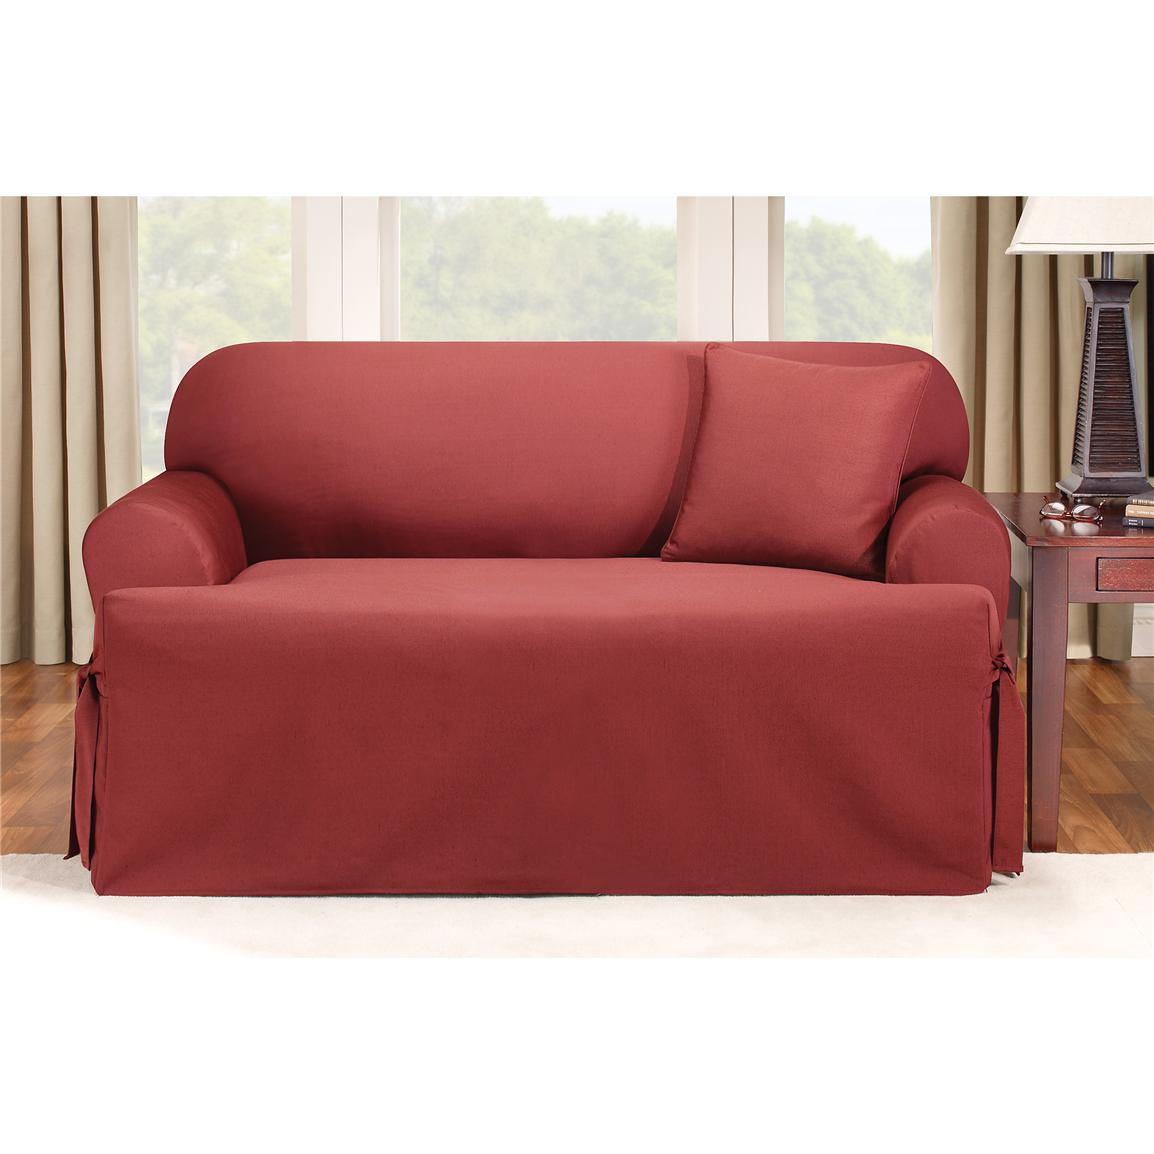 Sure Fit T Cushion Slipcovers Home Furniture Design